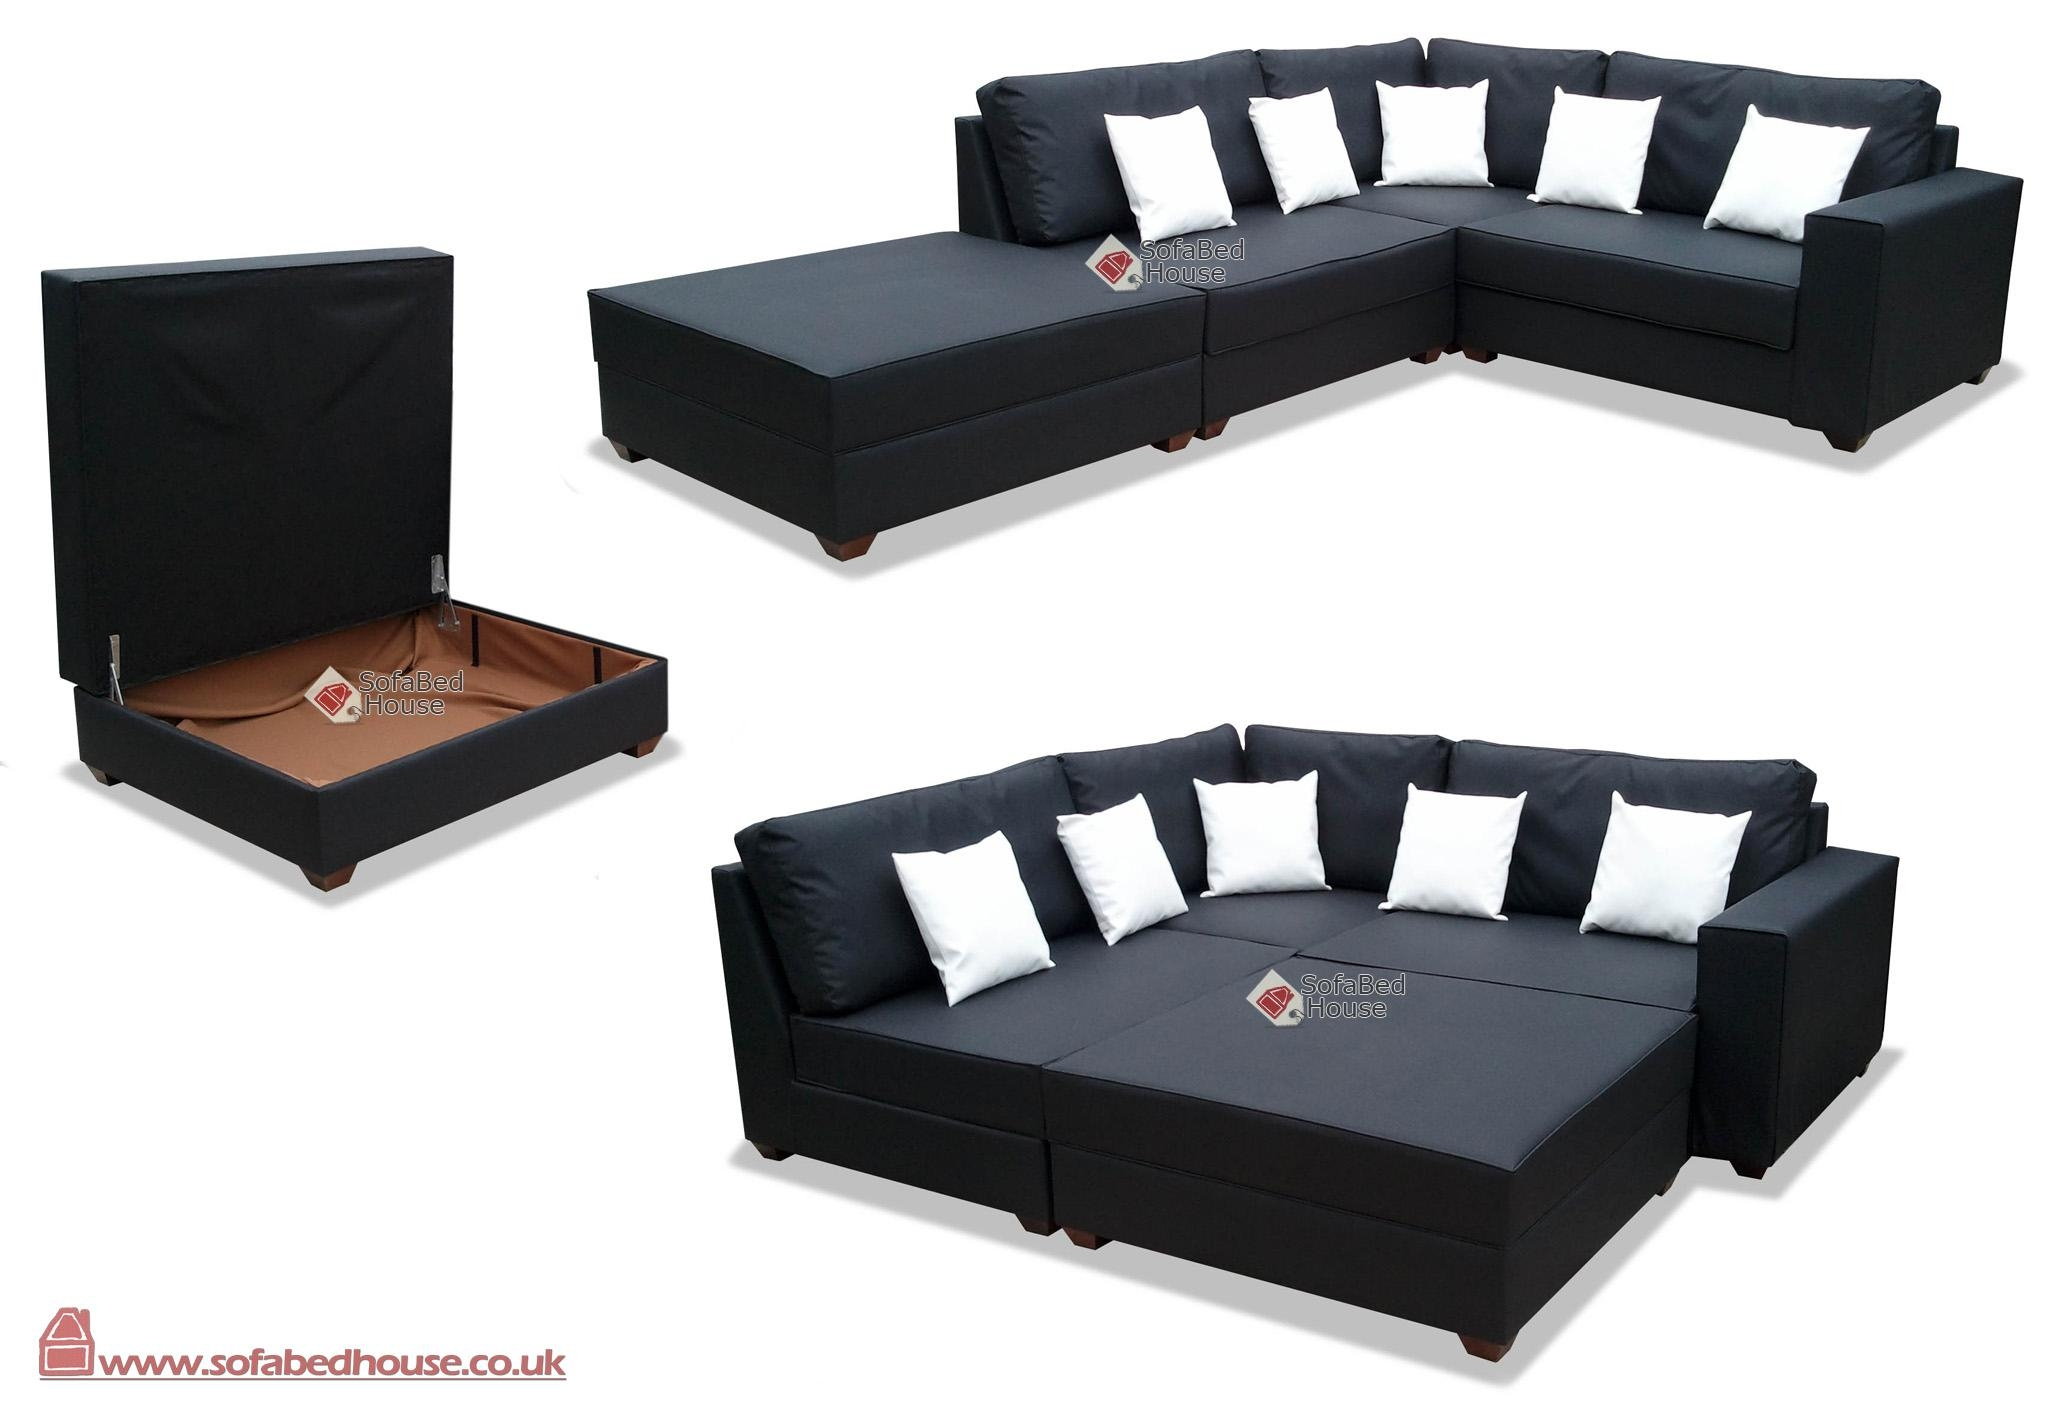 Cheap Corner Sofa Beds Uk | Crepeloversca Intended For Cheap Corner Sofas (Image 3 of 20)